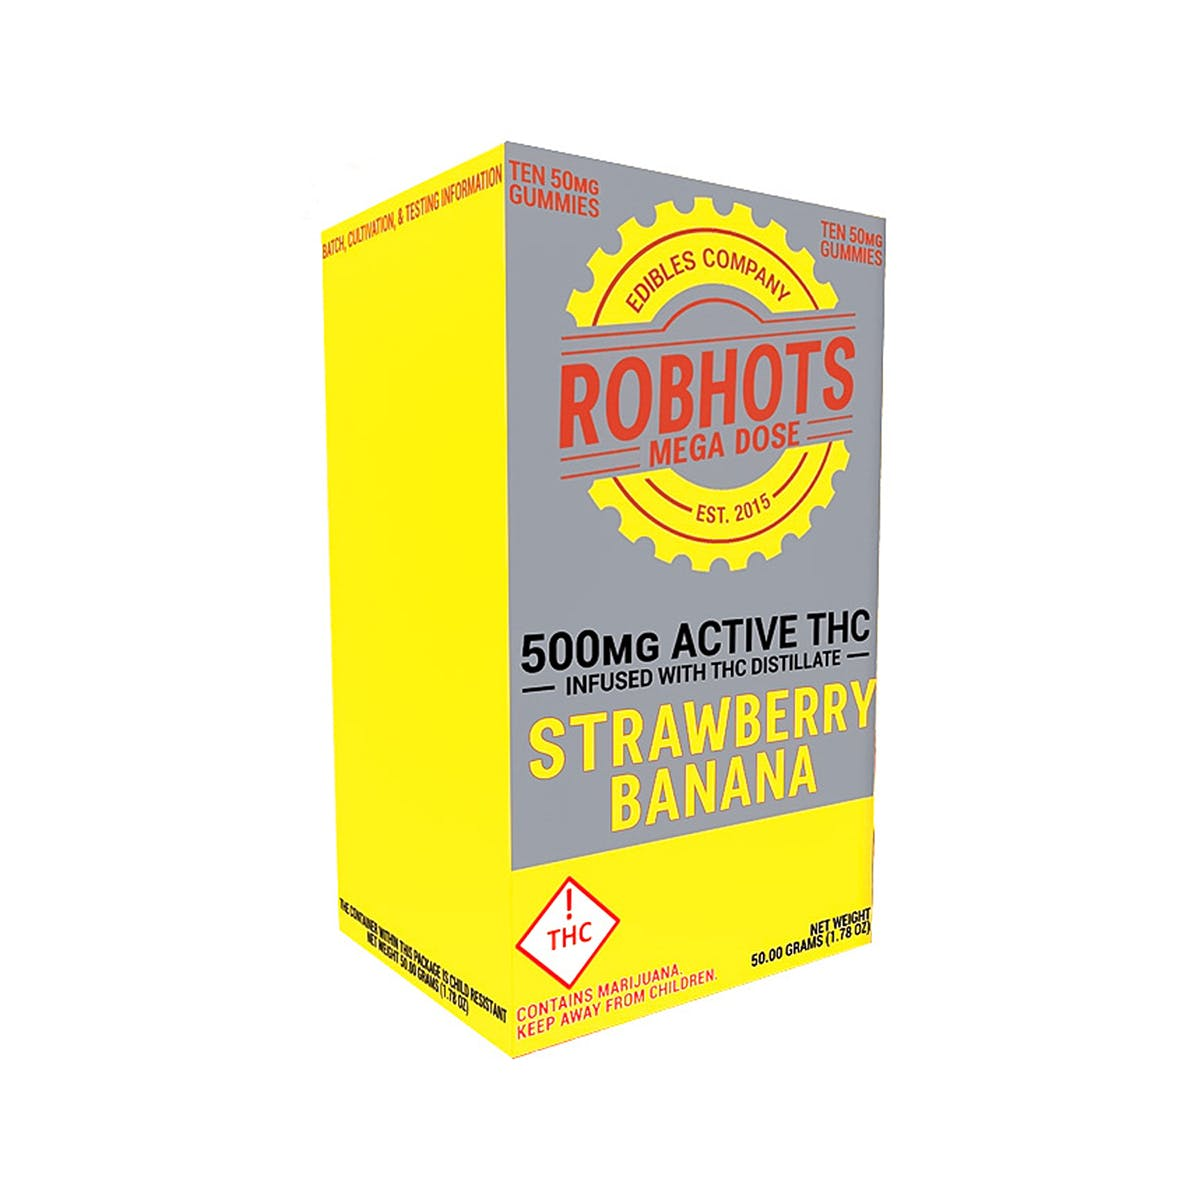 marijuana-dispensaries-sunrise-solutions-2c-llc-in-bailey-strawberry-banana-500mg-robhots-gummy-multipack